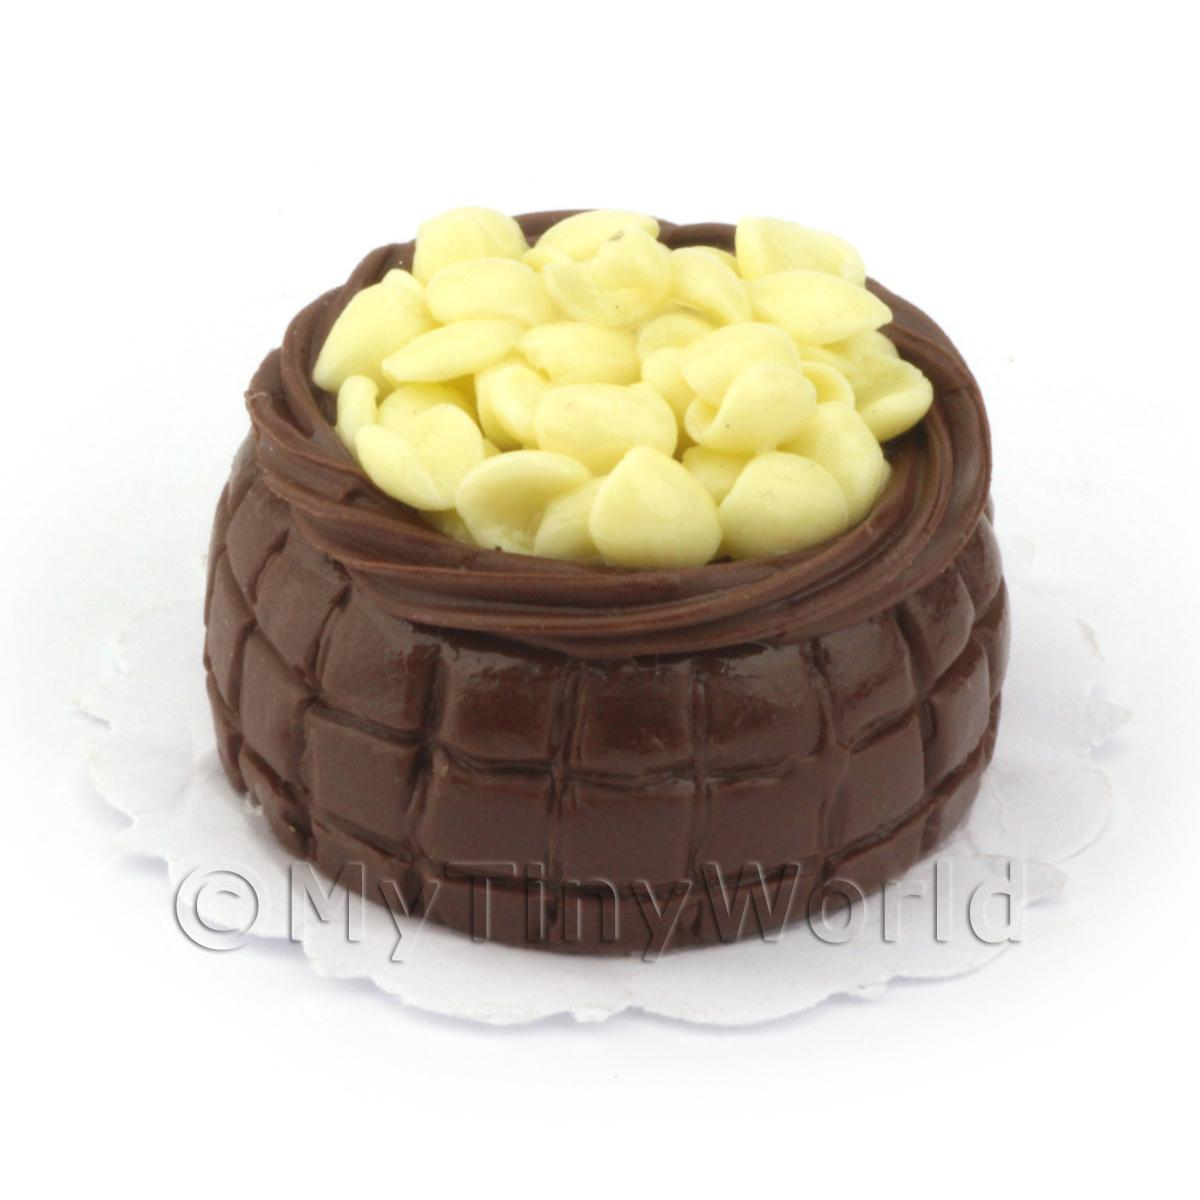 Dolls House Miniature Chocolate Celebration Cake